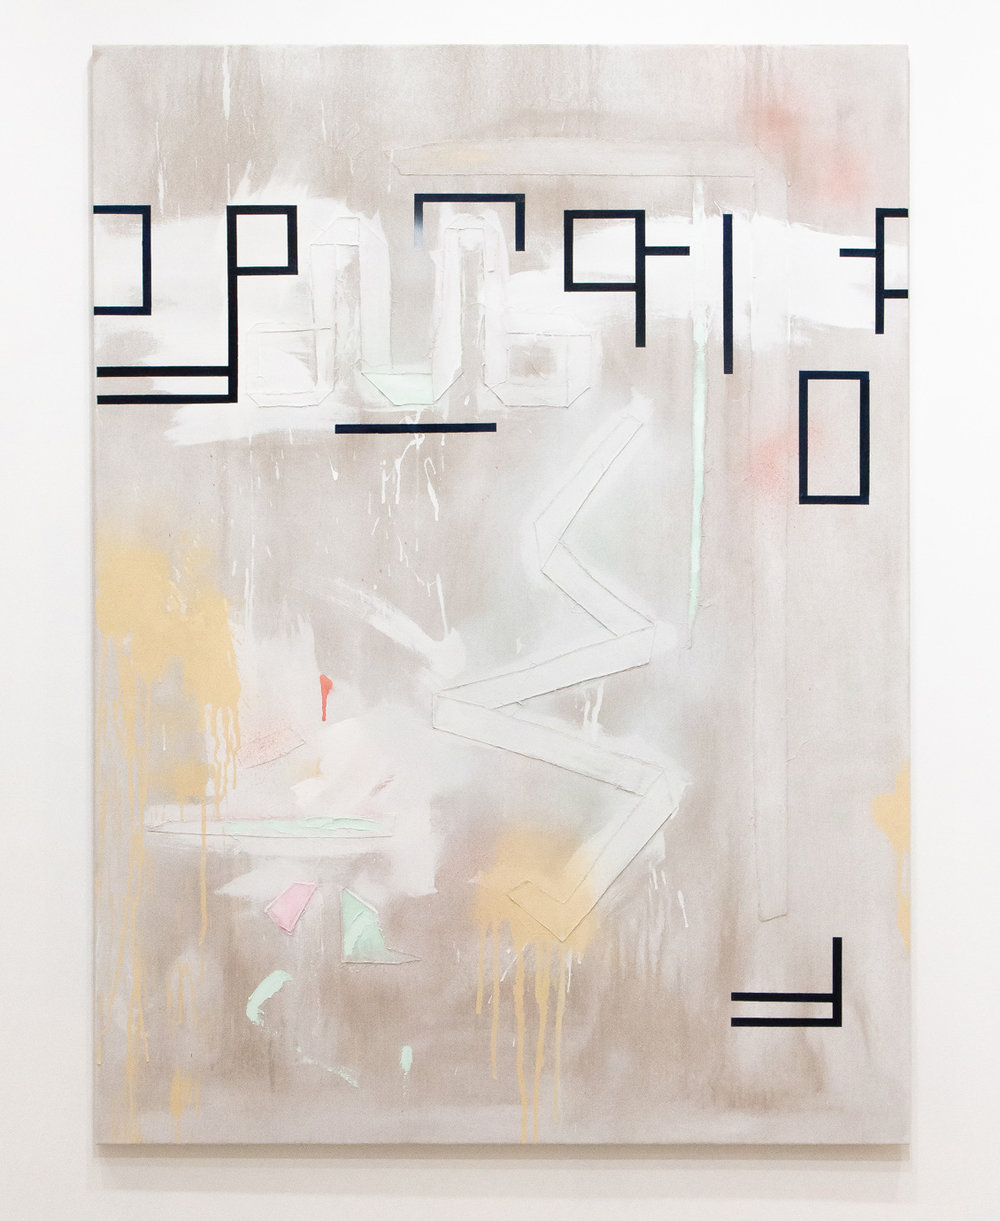 SARAH crowEST  Appliqué #3 (soft eyes, dubwise)  2018 linen, gesso, acrylic paint, linen and cotton thread 137 × 102 cm